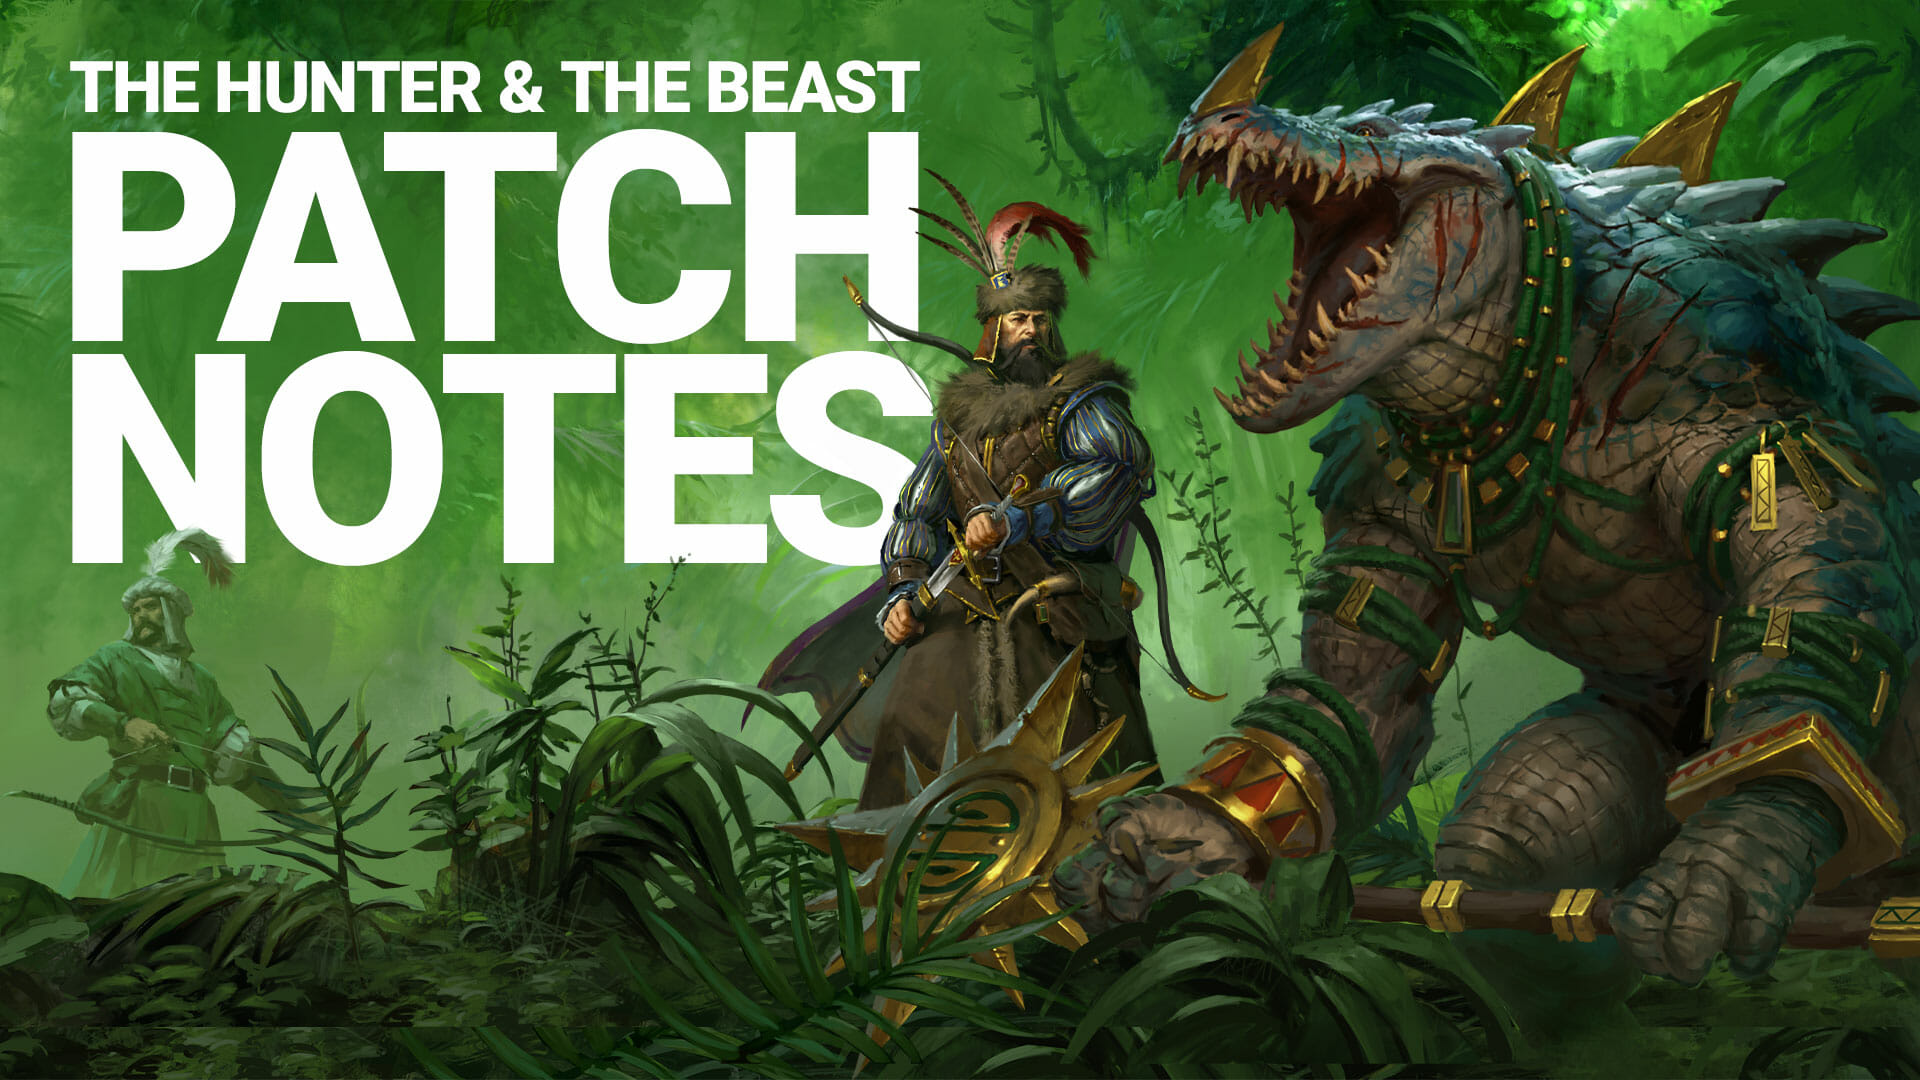 Total War Warhammer Ii Patch Notes The Empire Undivided Update Total War I'm not sure if there's any right or wrong way to play, but this walkthrough guide should help you with any puzzles you get stuck on. total war warhammer ii patch notes